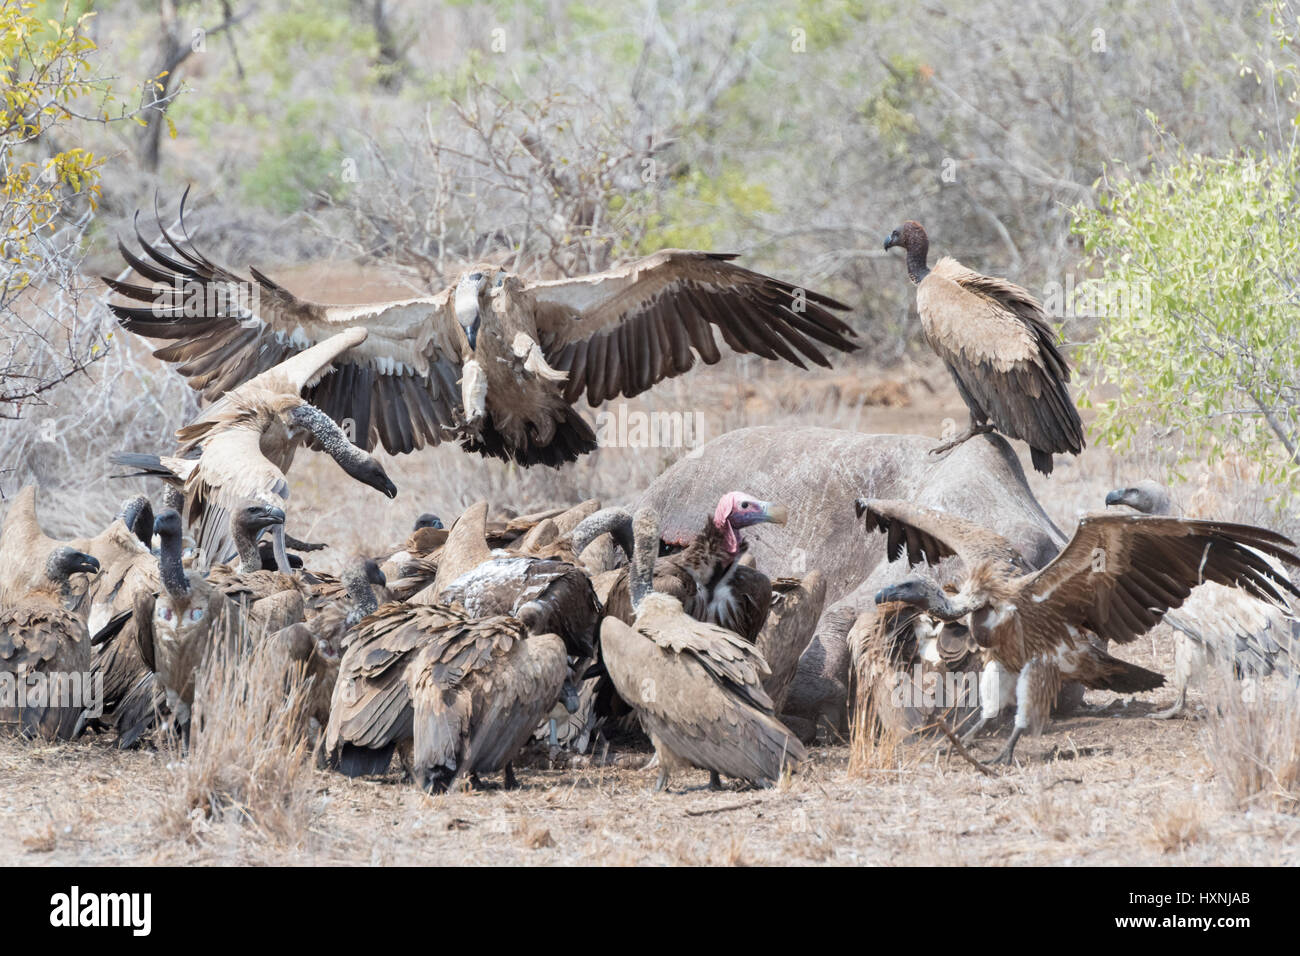 White-backed vulture (Gyps africanus and cape vulture (Gyps coprotheres) fighting over carcass, Kruger national - Stock Image